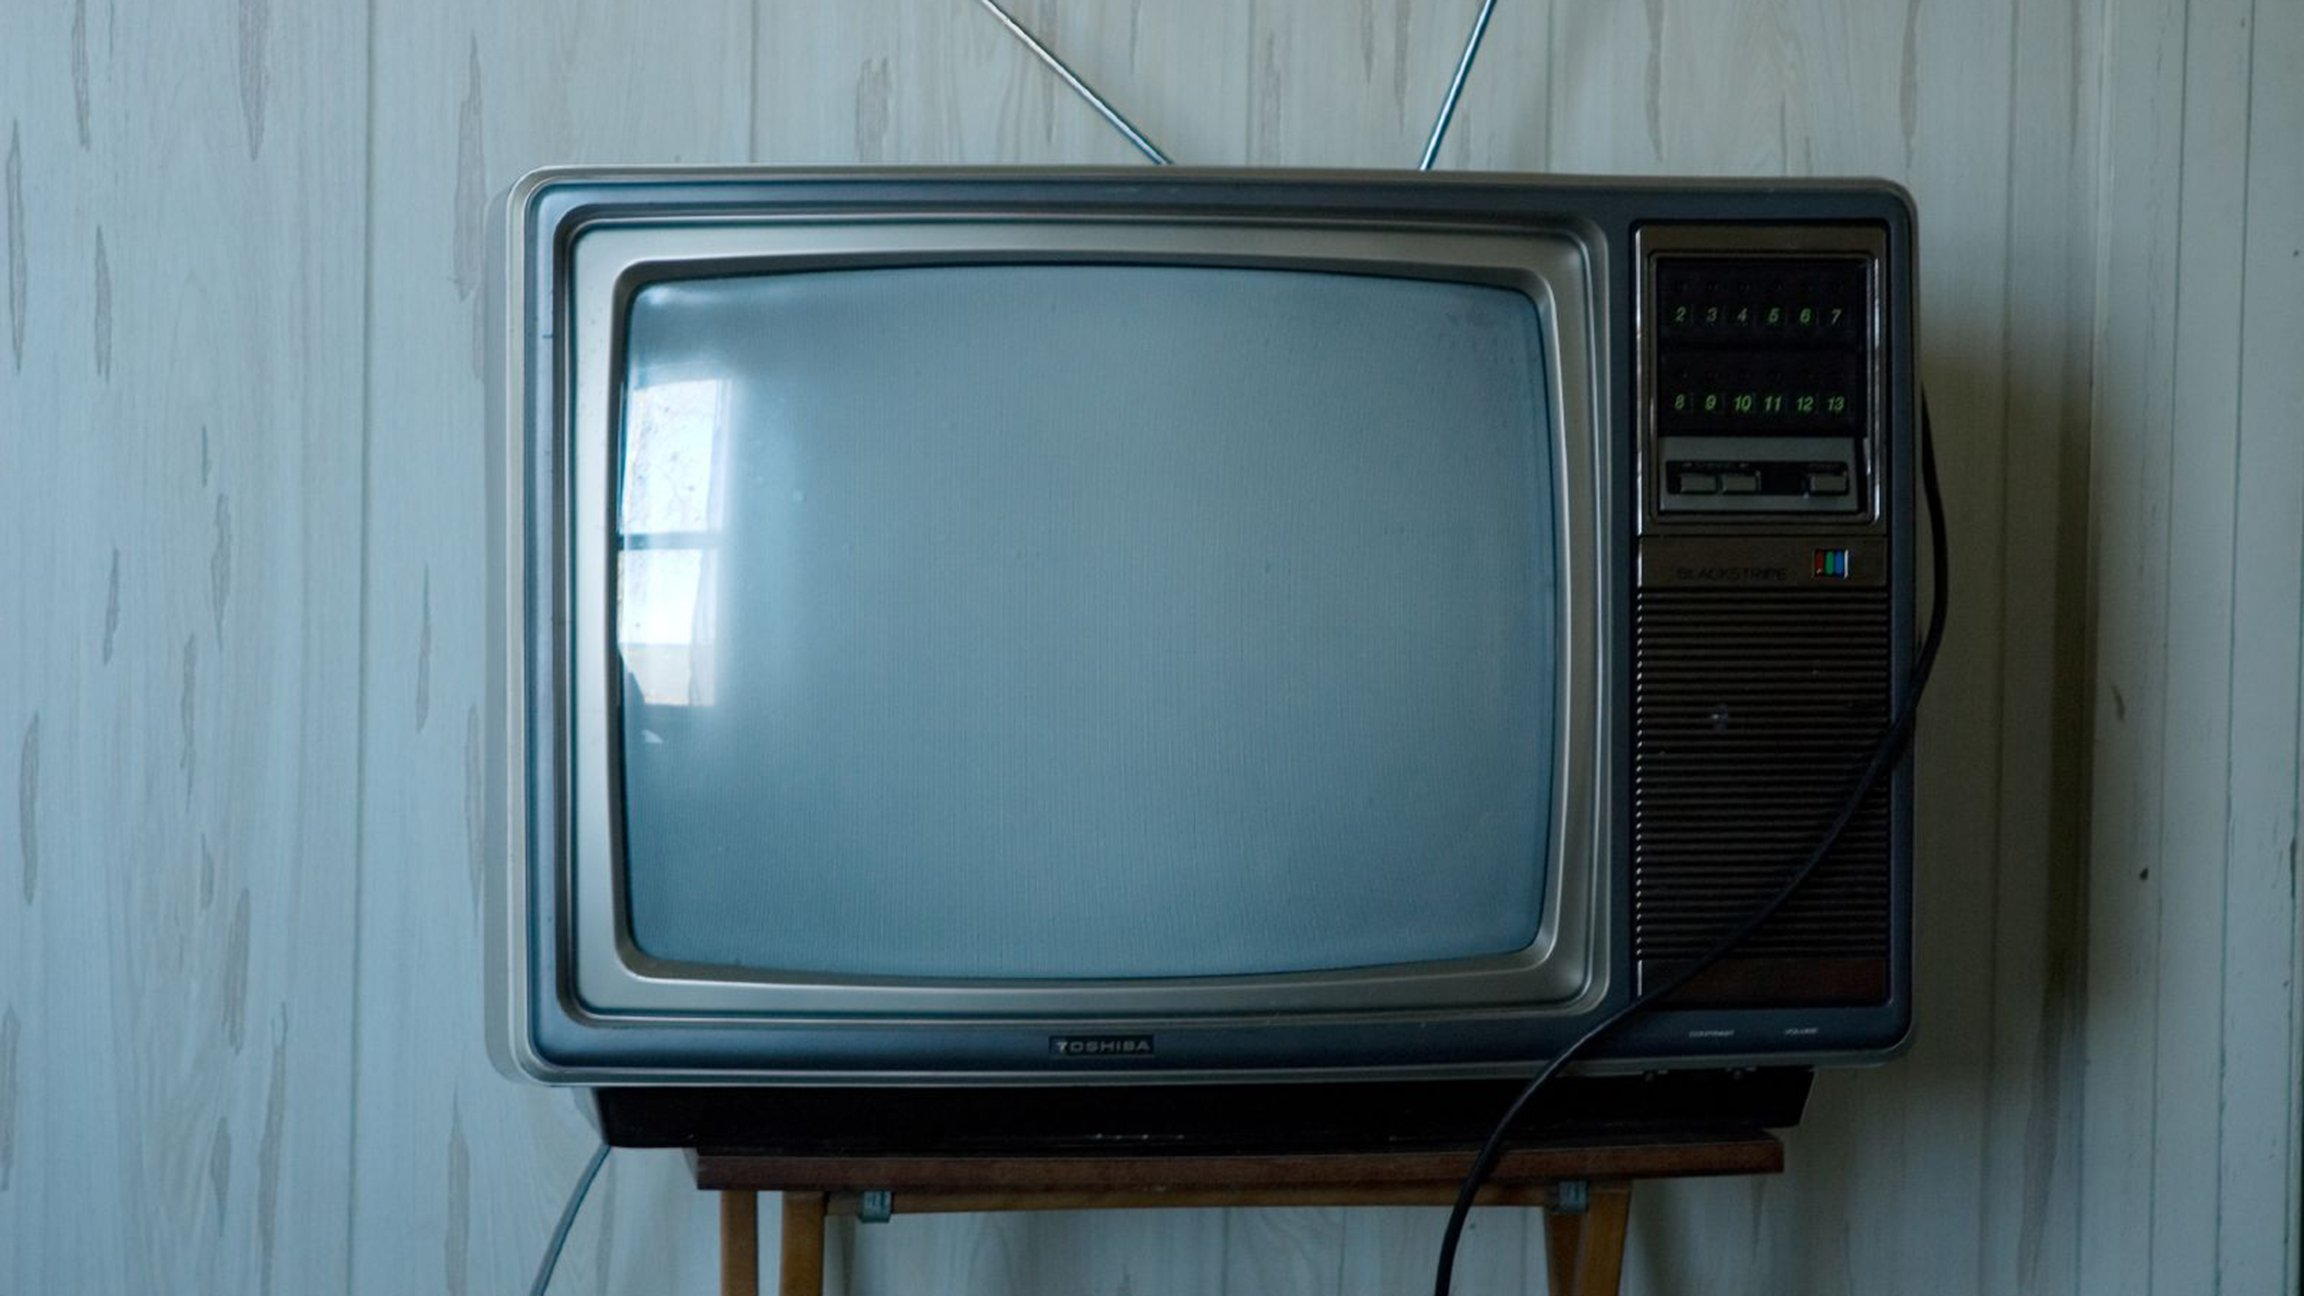 history of telivision The television is one of the most prominent inventions of the 20th century it has become one of the most common ways people view the larger world beyond them, as.